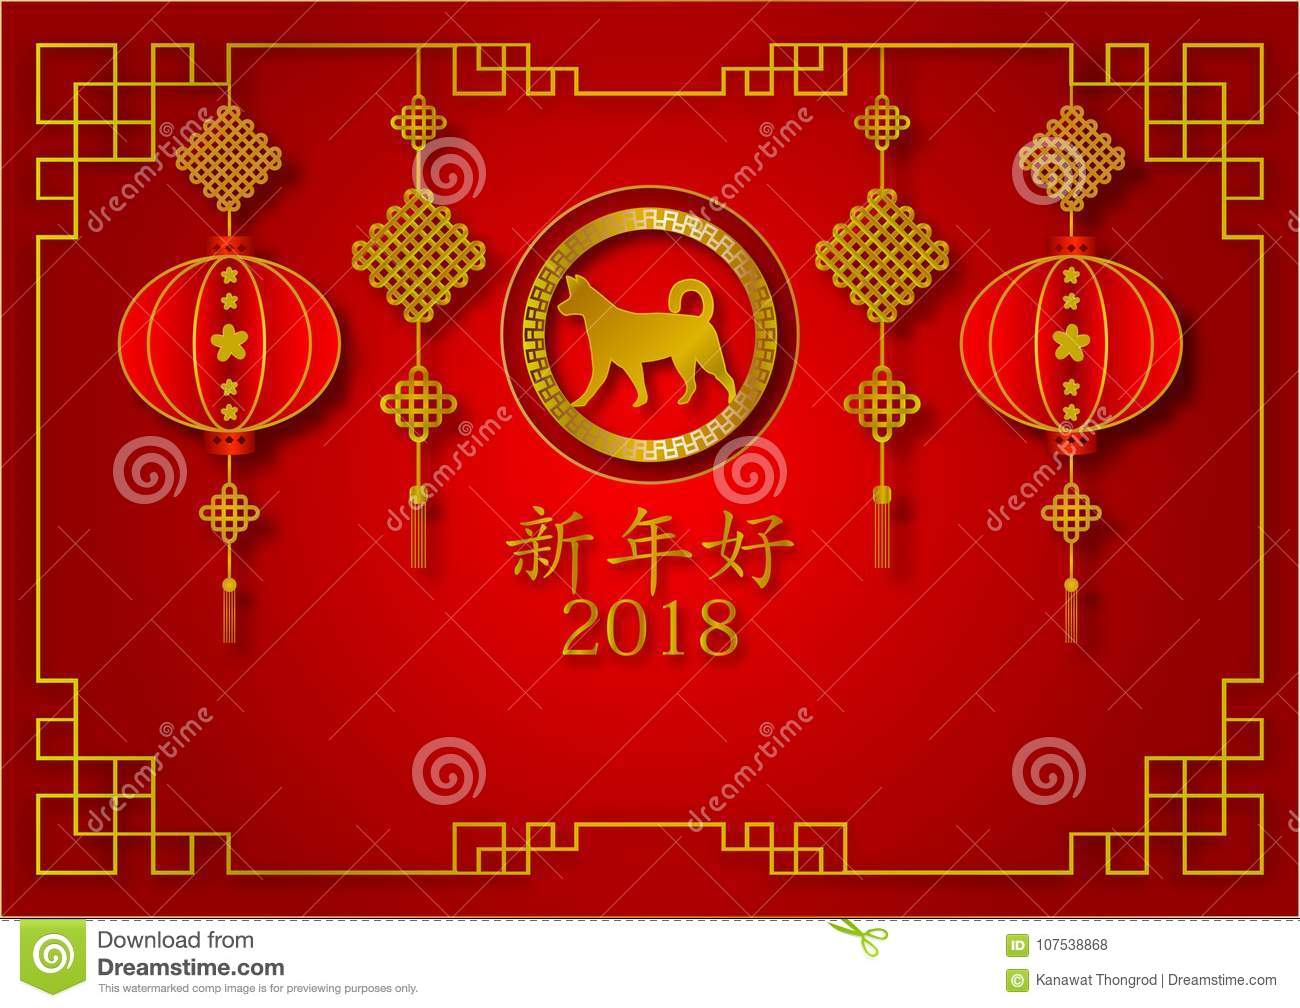 paper art style of happy chinese new year 2018 background vector illustration